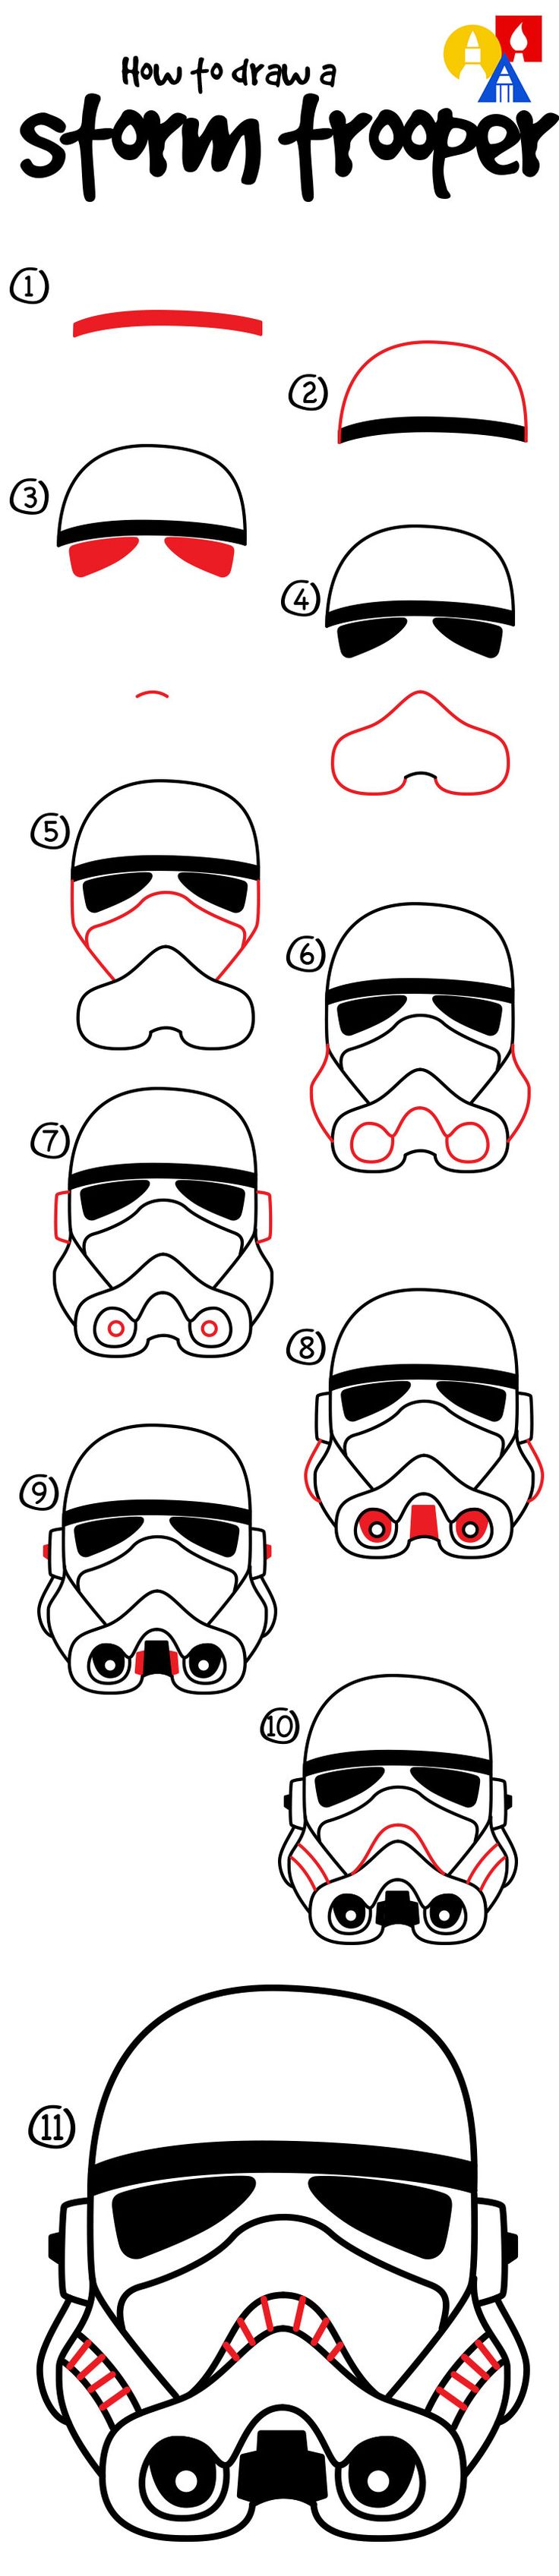 How To Draw A Stormtrooper Helmet - Art For Kids Hub -